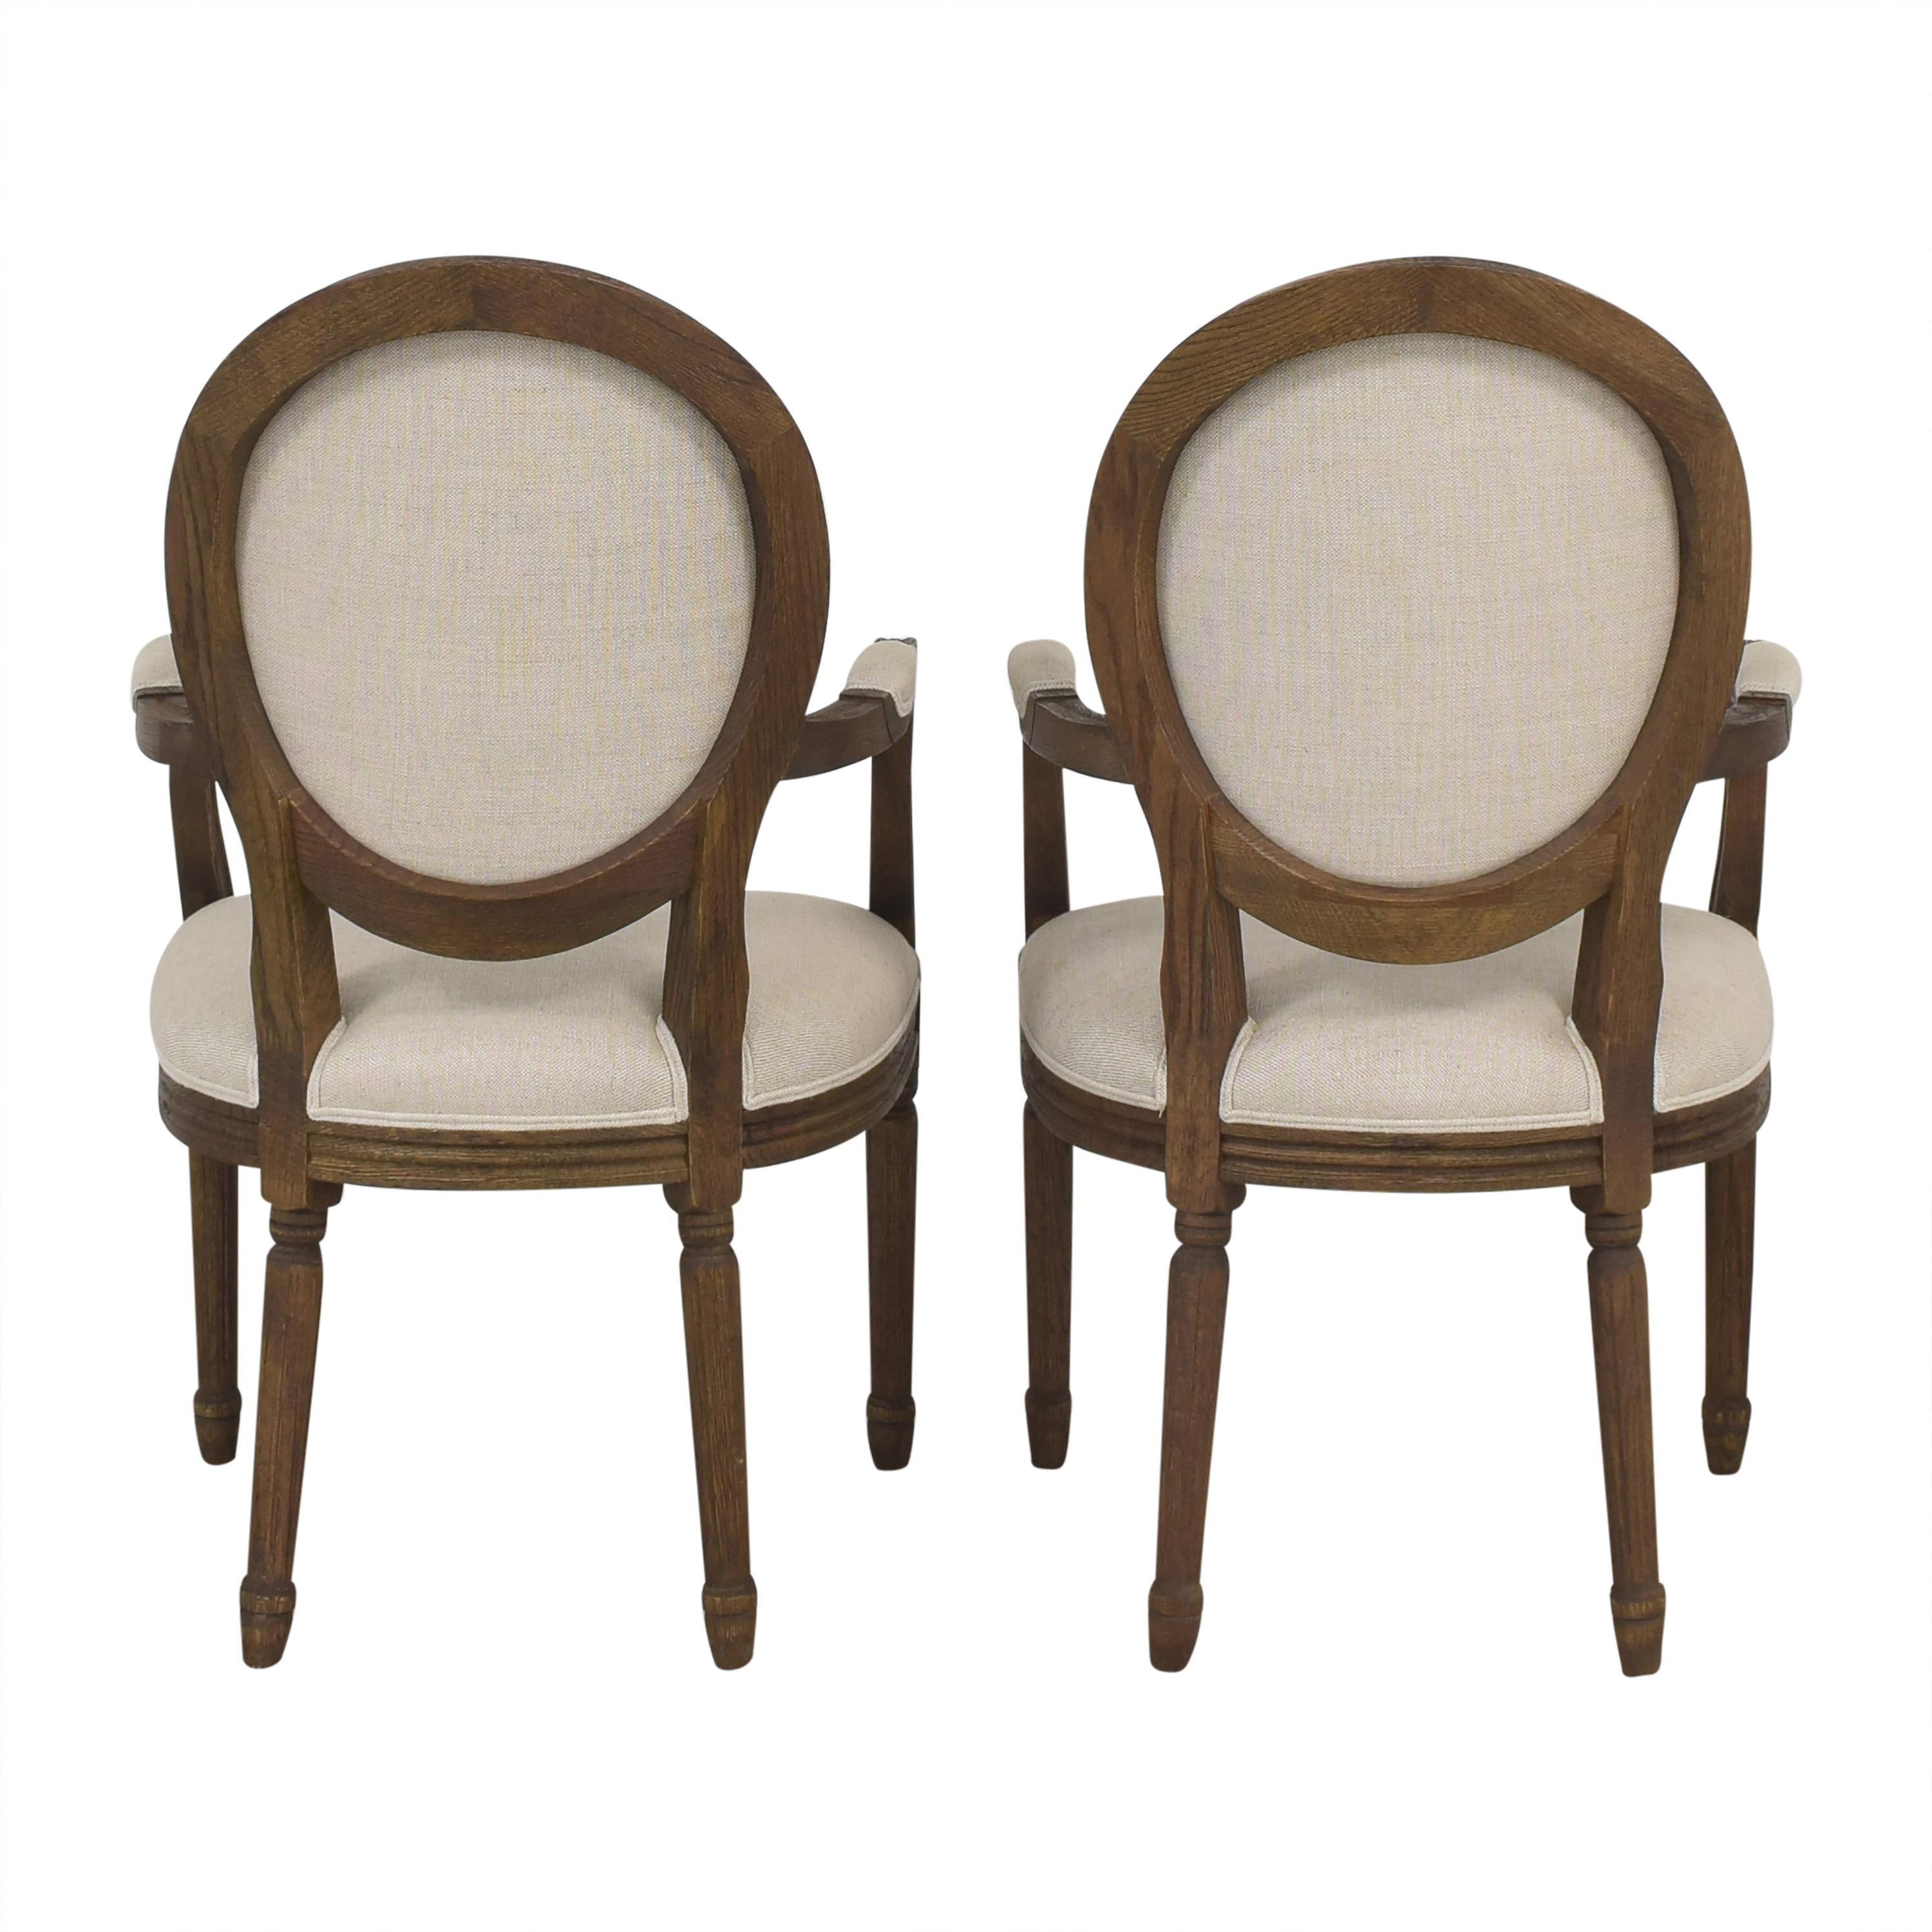 Restoration Hardware Restoration Hardware Vintage French Round Dining Arm Chairs on sale